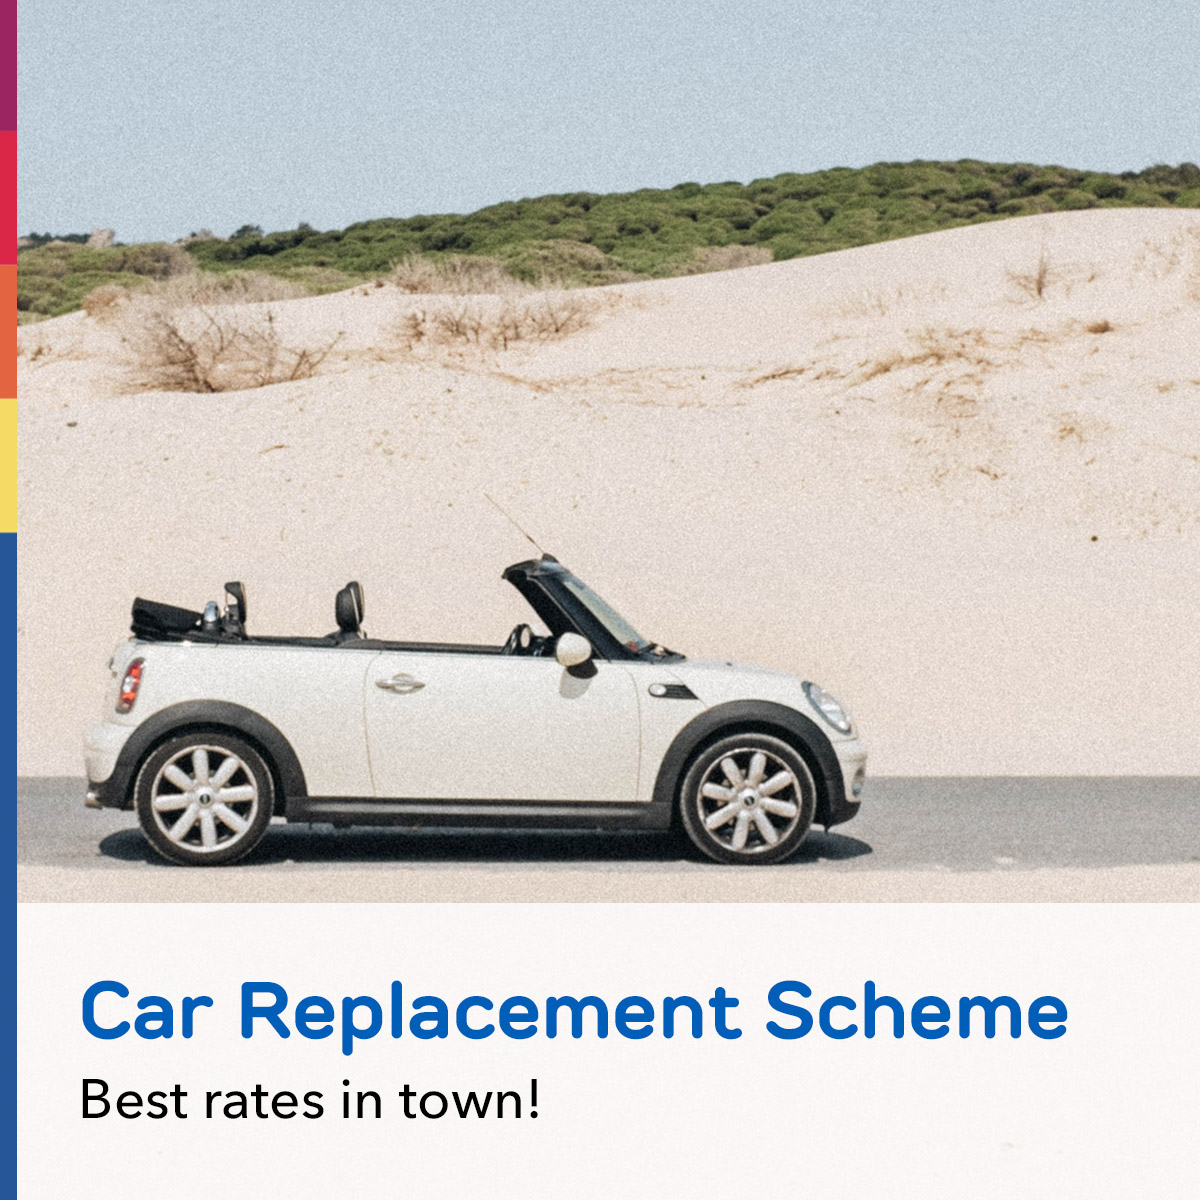 Car Replacement Scheme. Best rates in town!